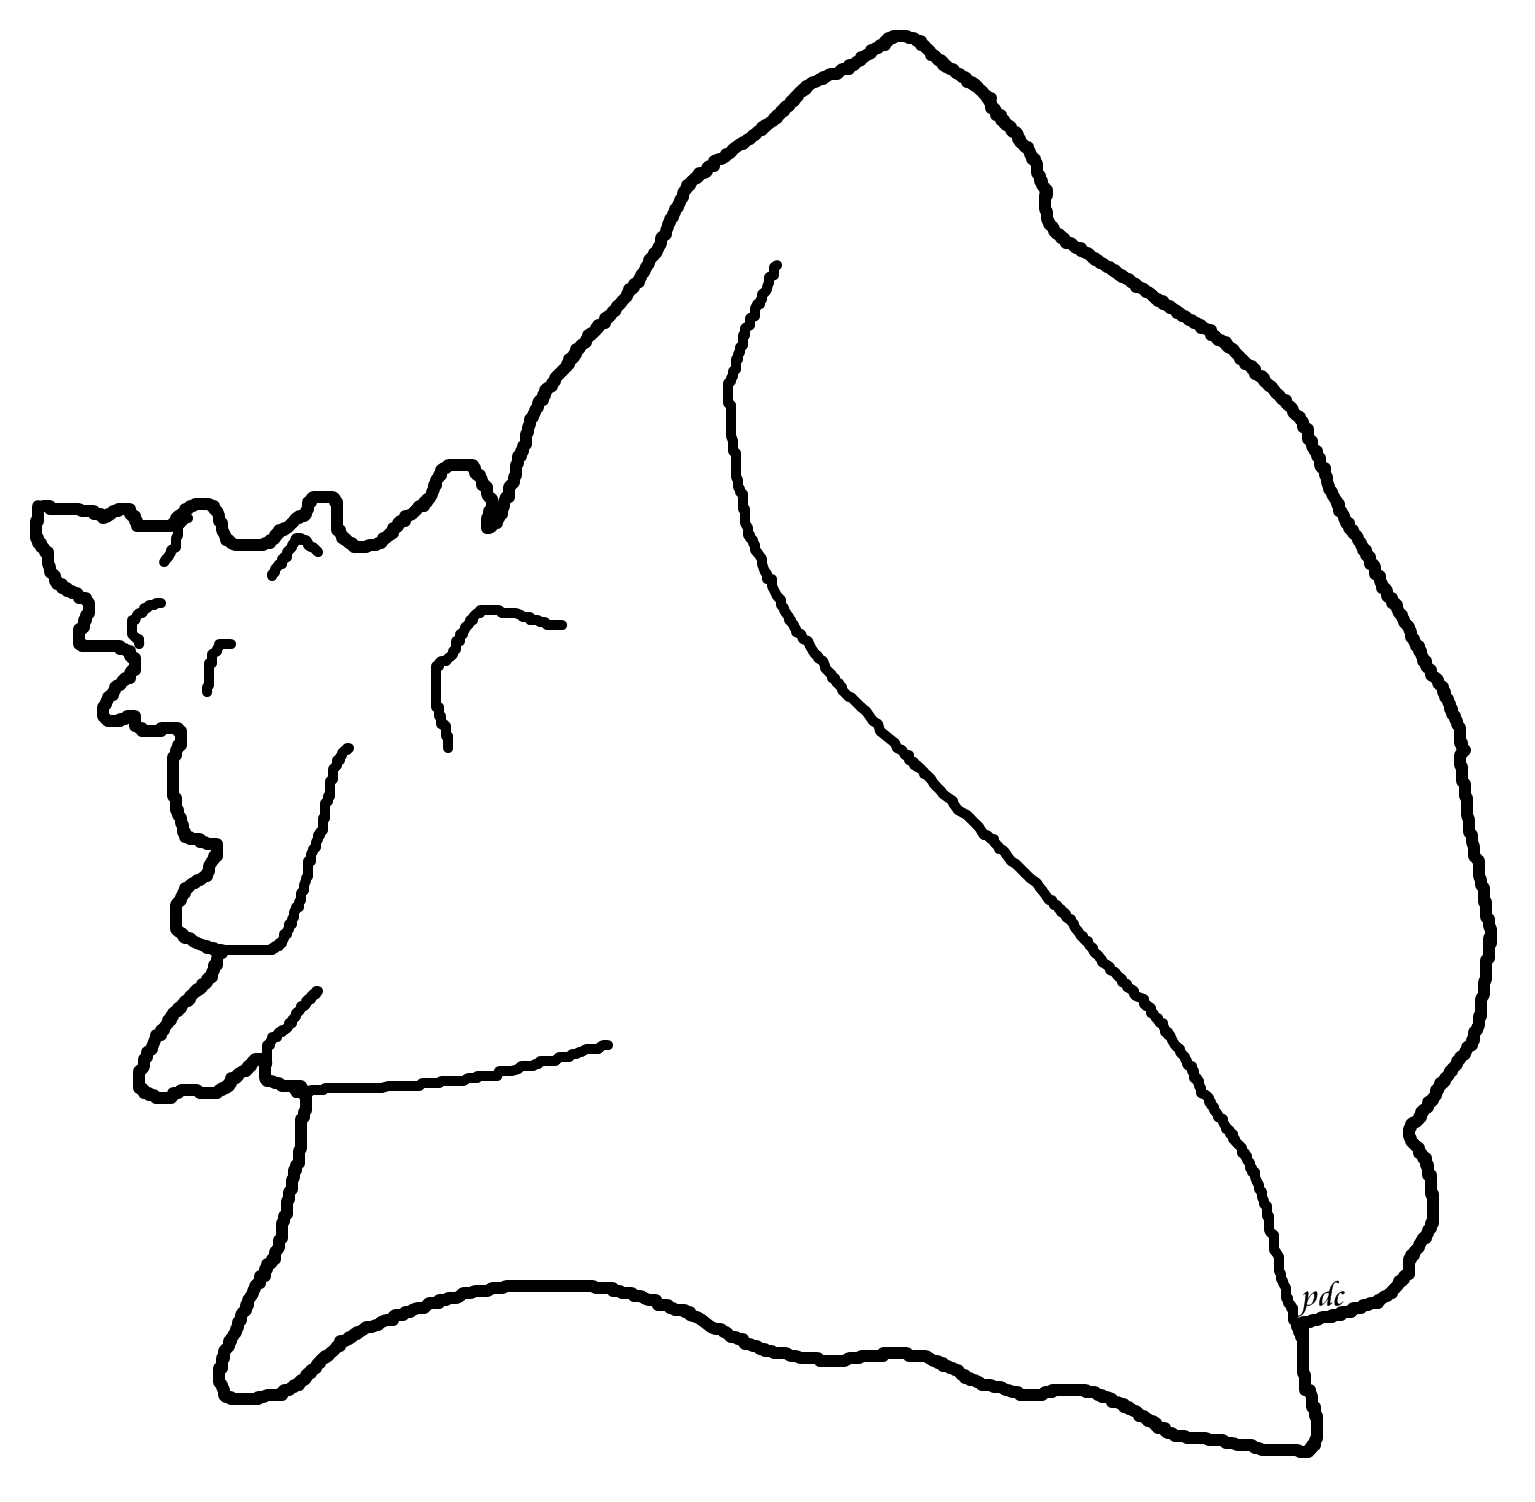 Free drawing download clip. Shell clipart conch